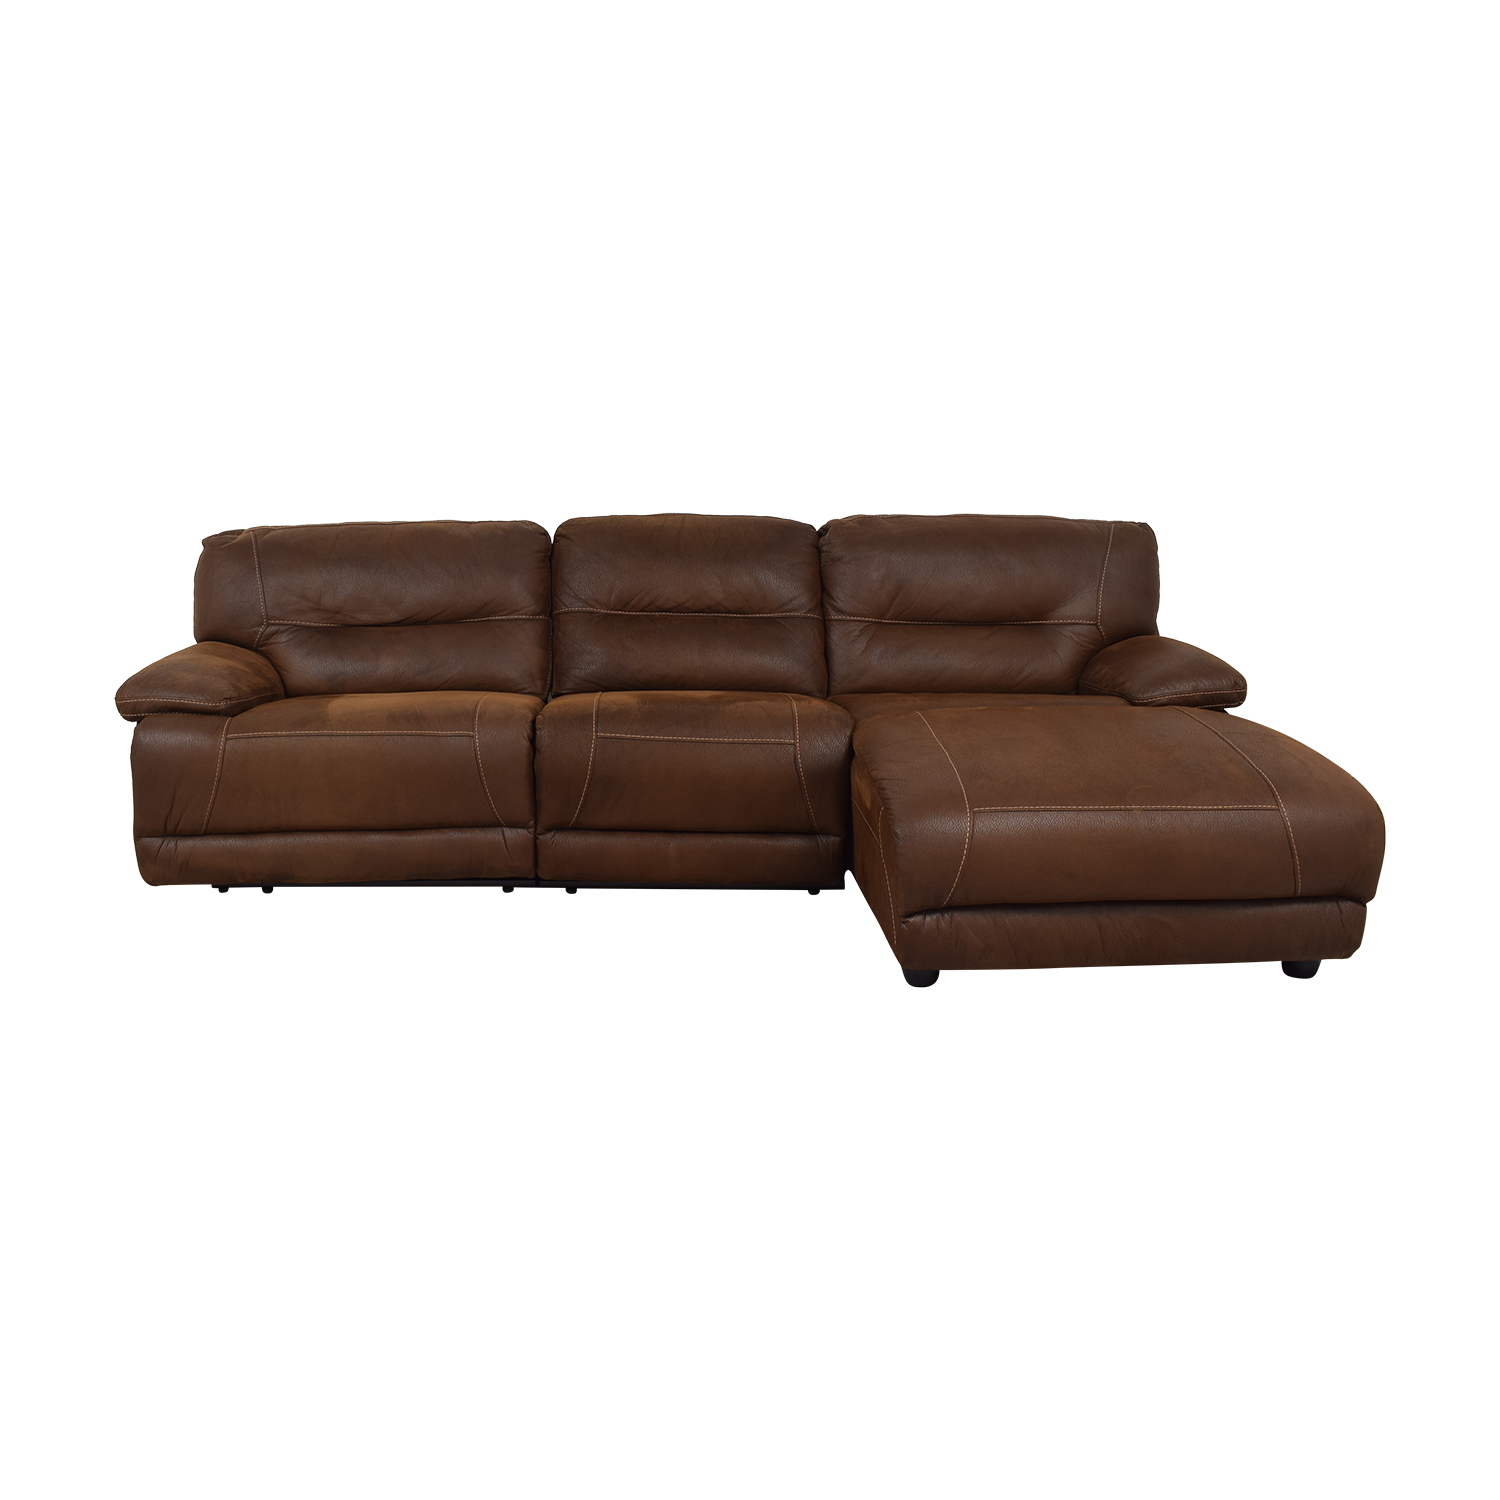 Bob's Discount Furniture Brown Tufted Chaise Sectional Recliner / Sectionals